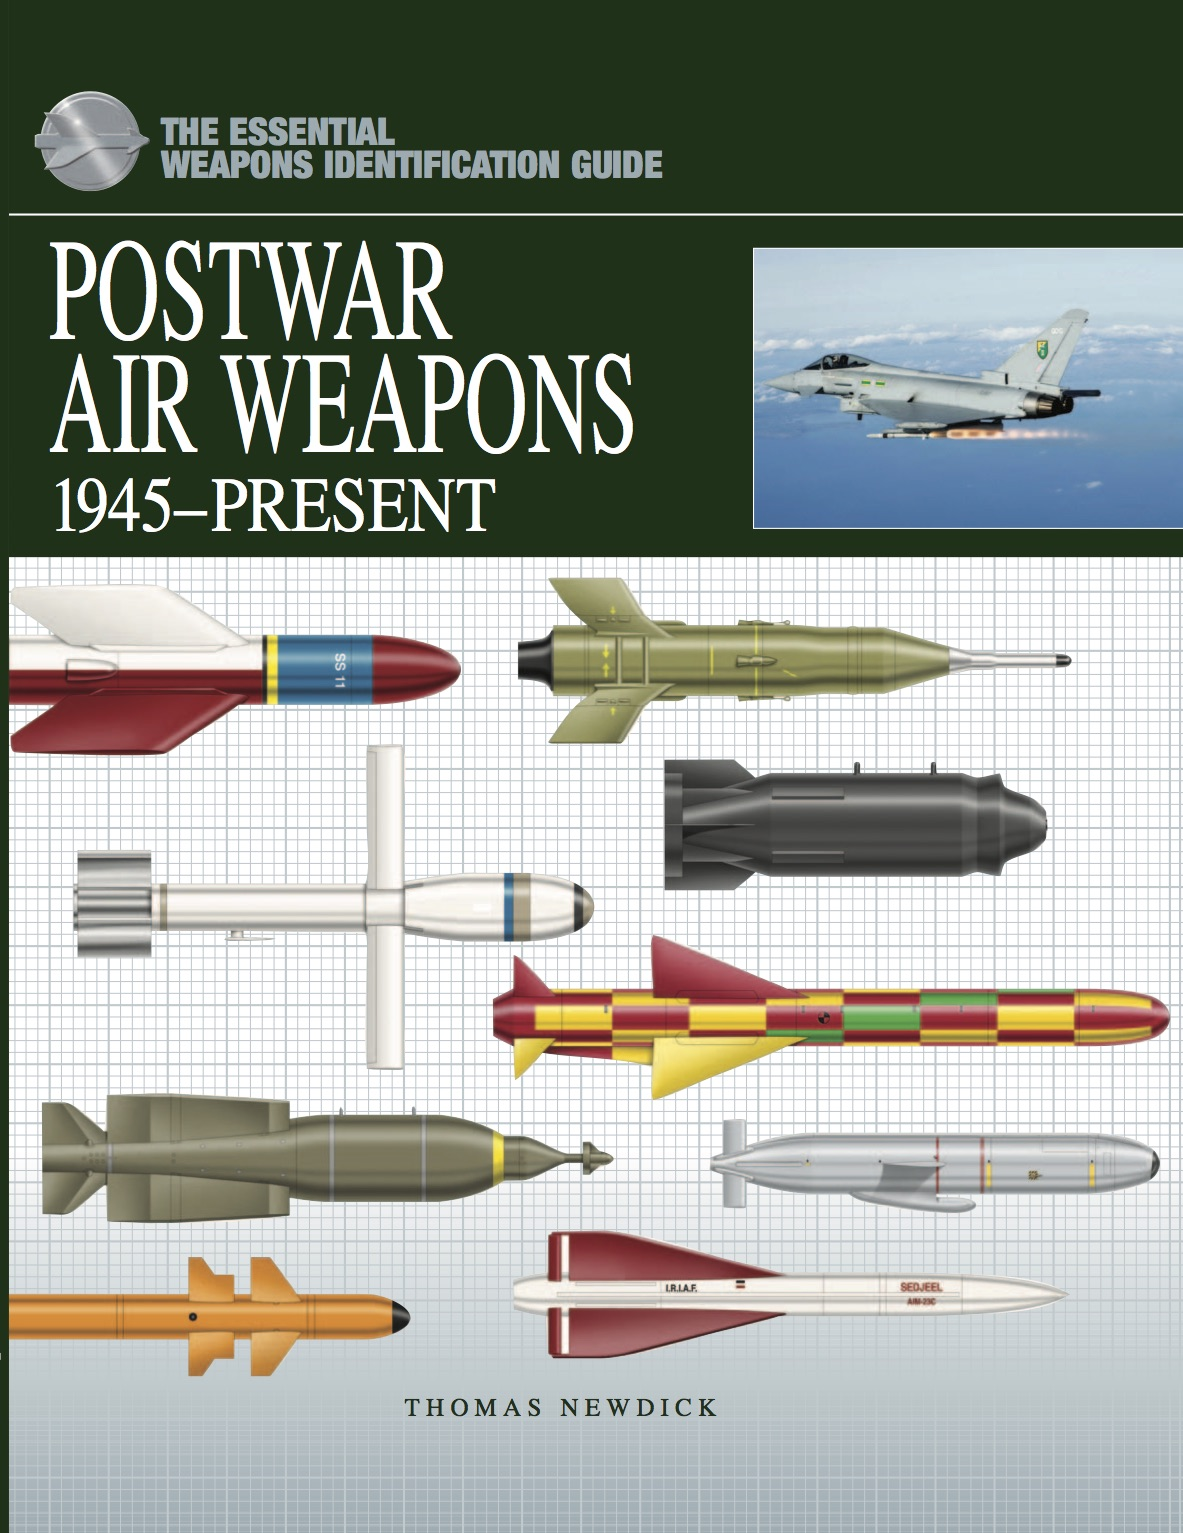 Postwar Air Weapons 1945-Present: The Essential Weapons Identification Guide